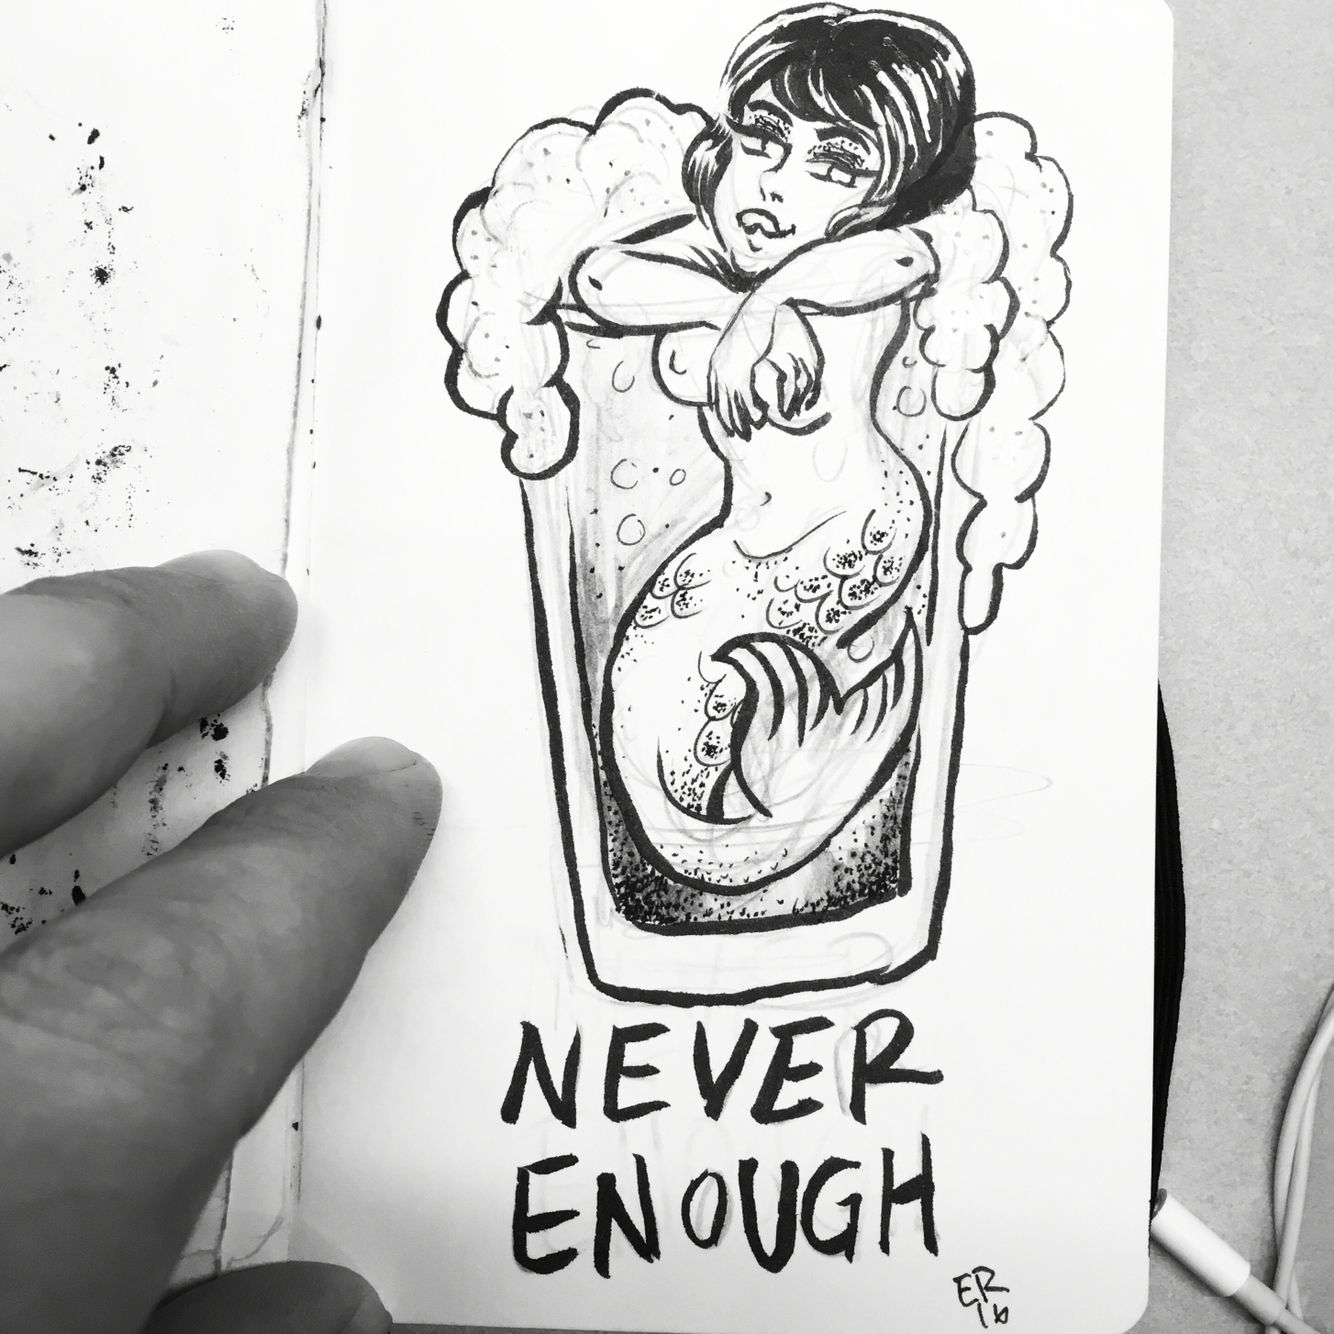 Mermaid Ina Beer Another Tattoo I Want To Get Now I Based This